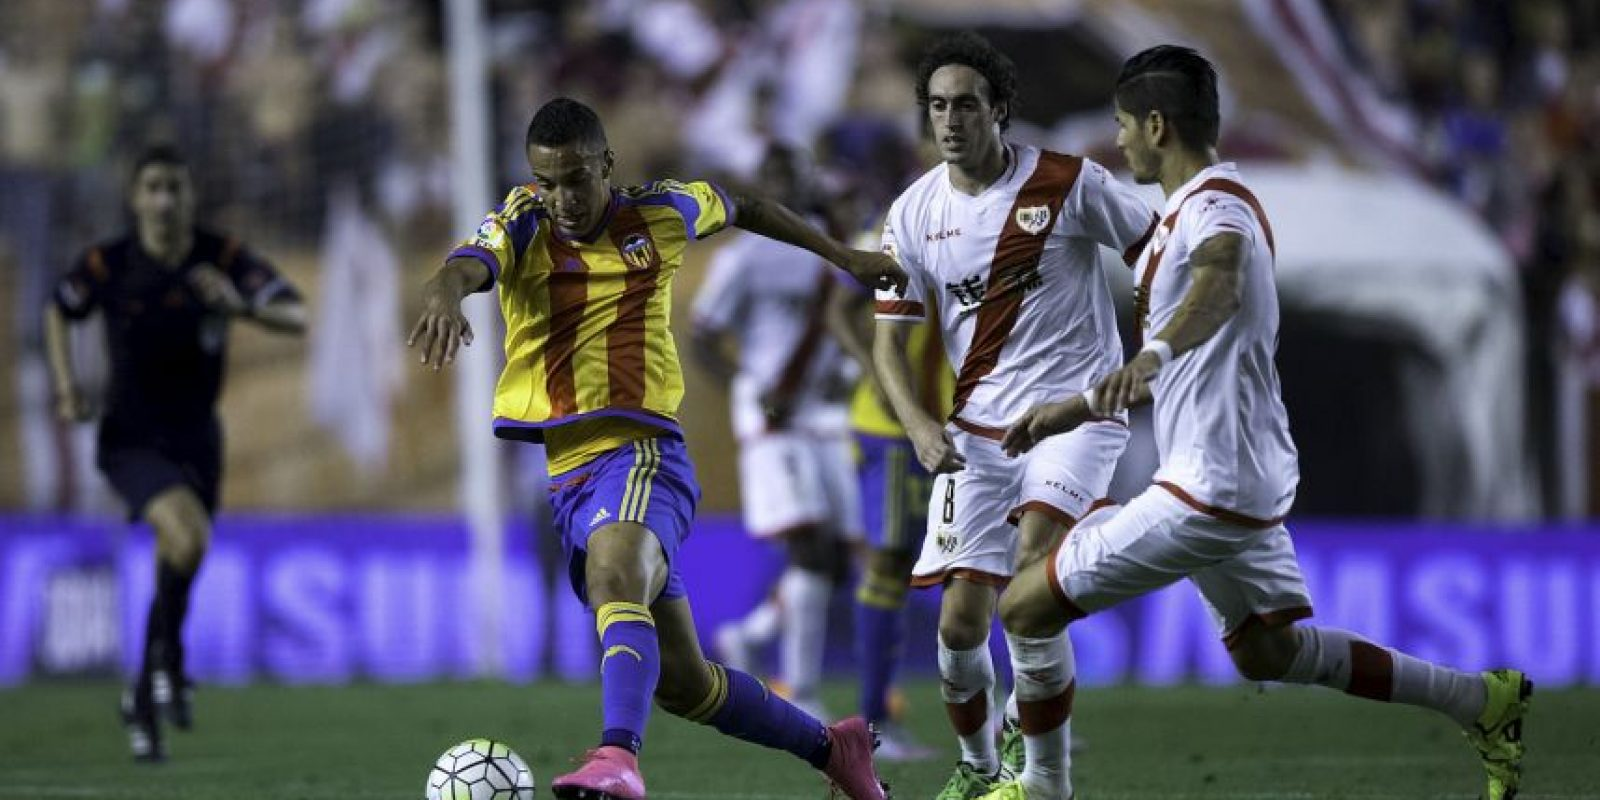 Rayo Vallecano 0-0 Valencia Foto: Getty Images